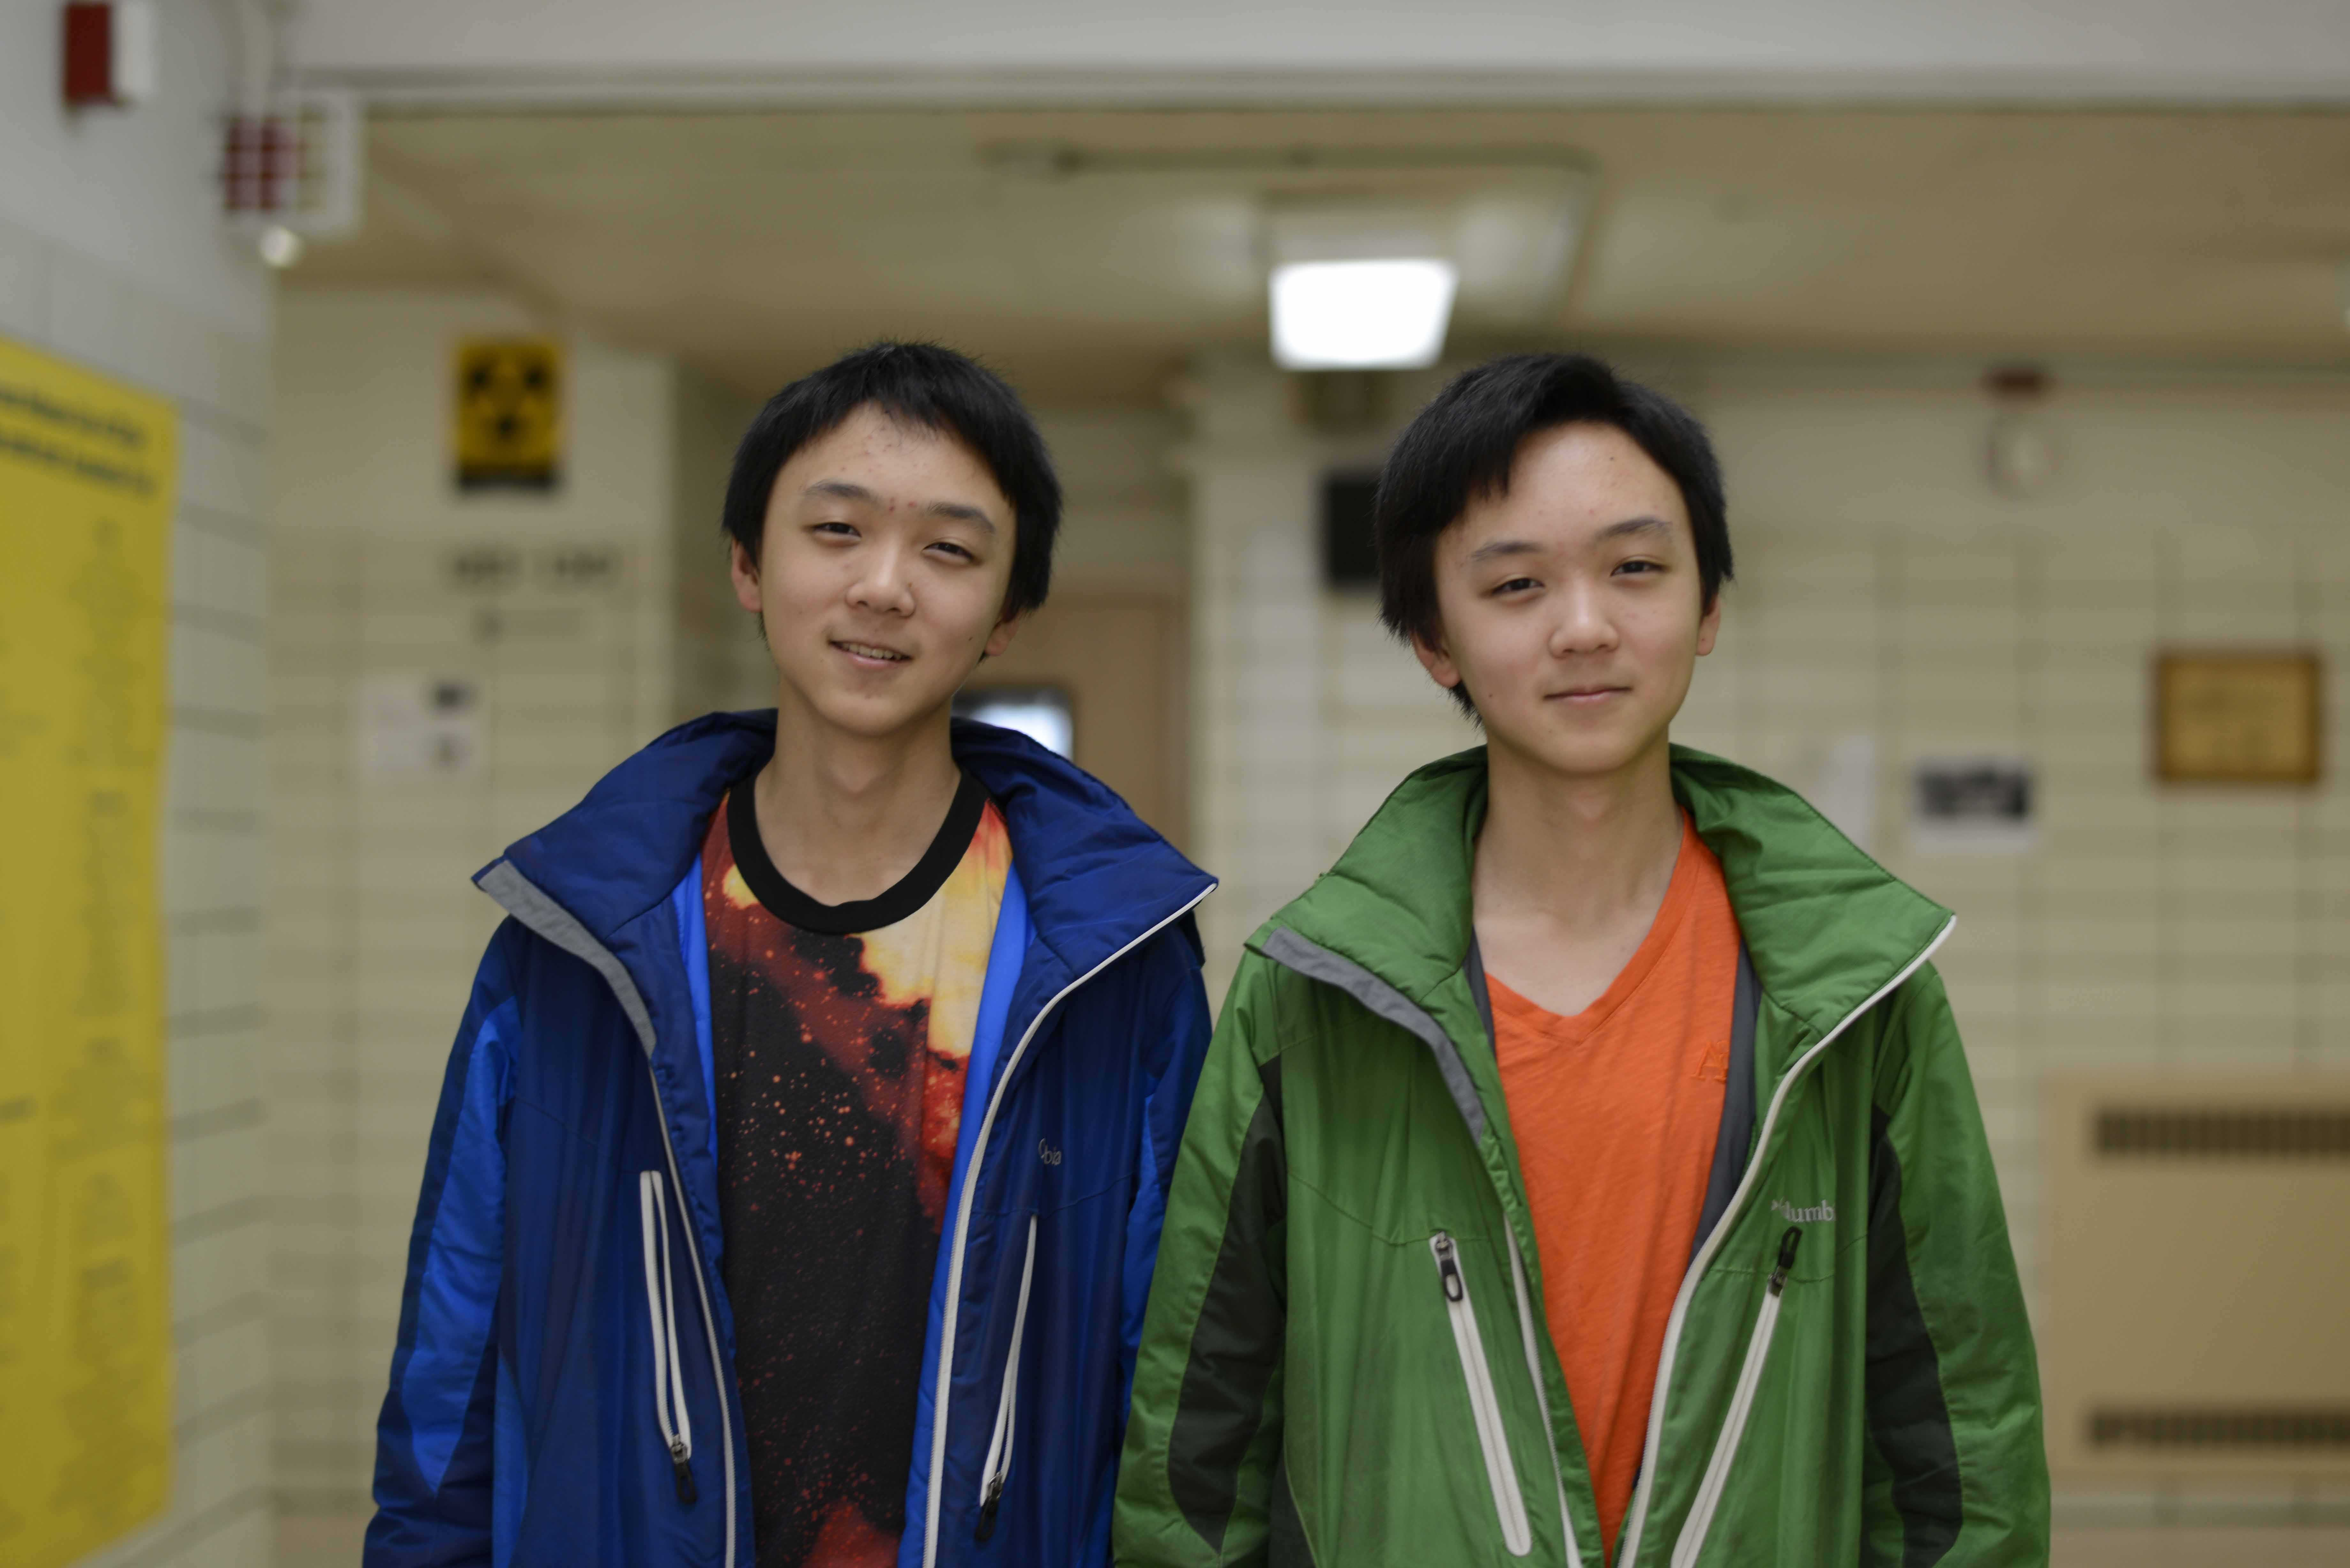 Twins Hans and John Hu heard about the competition through their father, who is a crystallographer. Their entry won 3rd place.